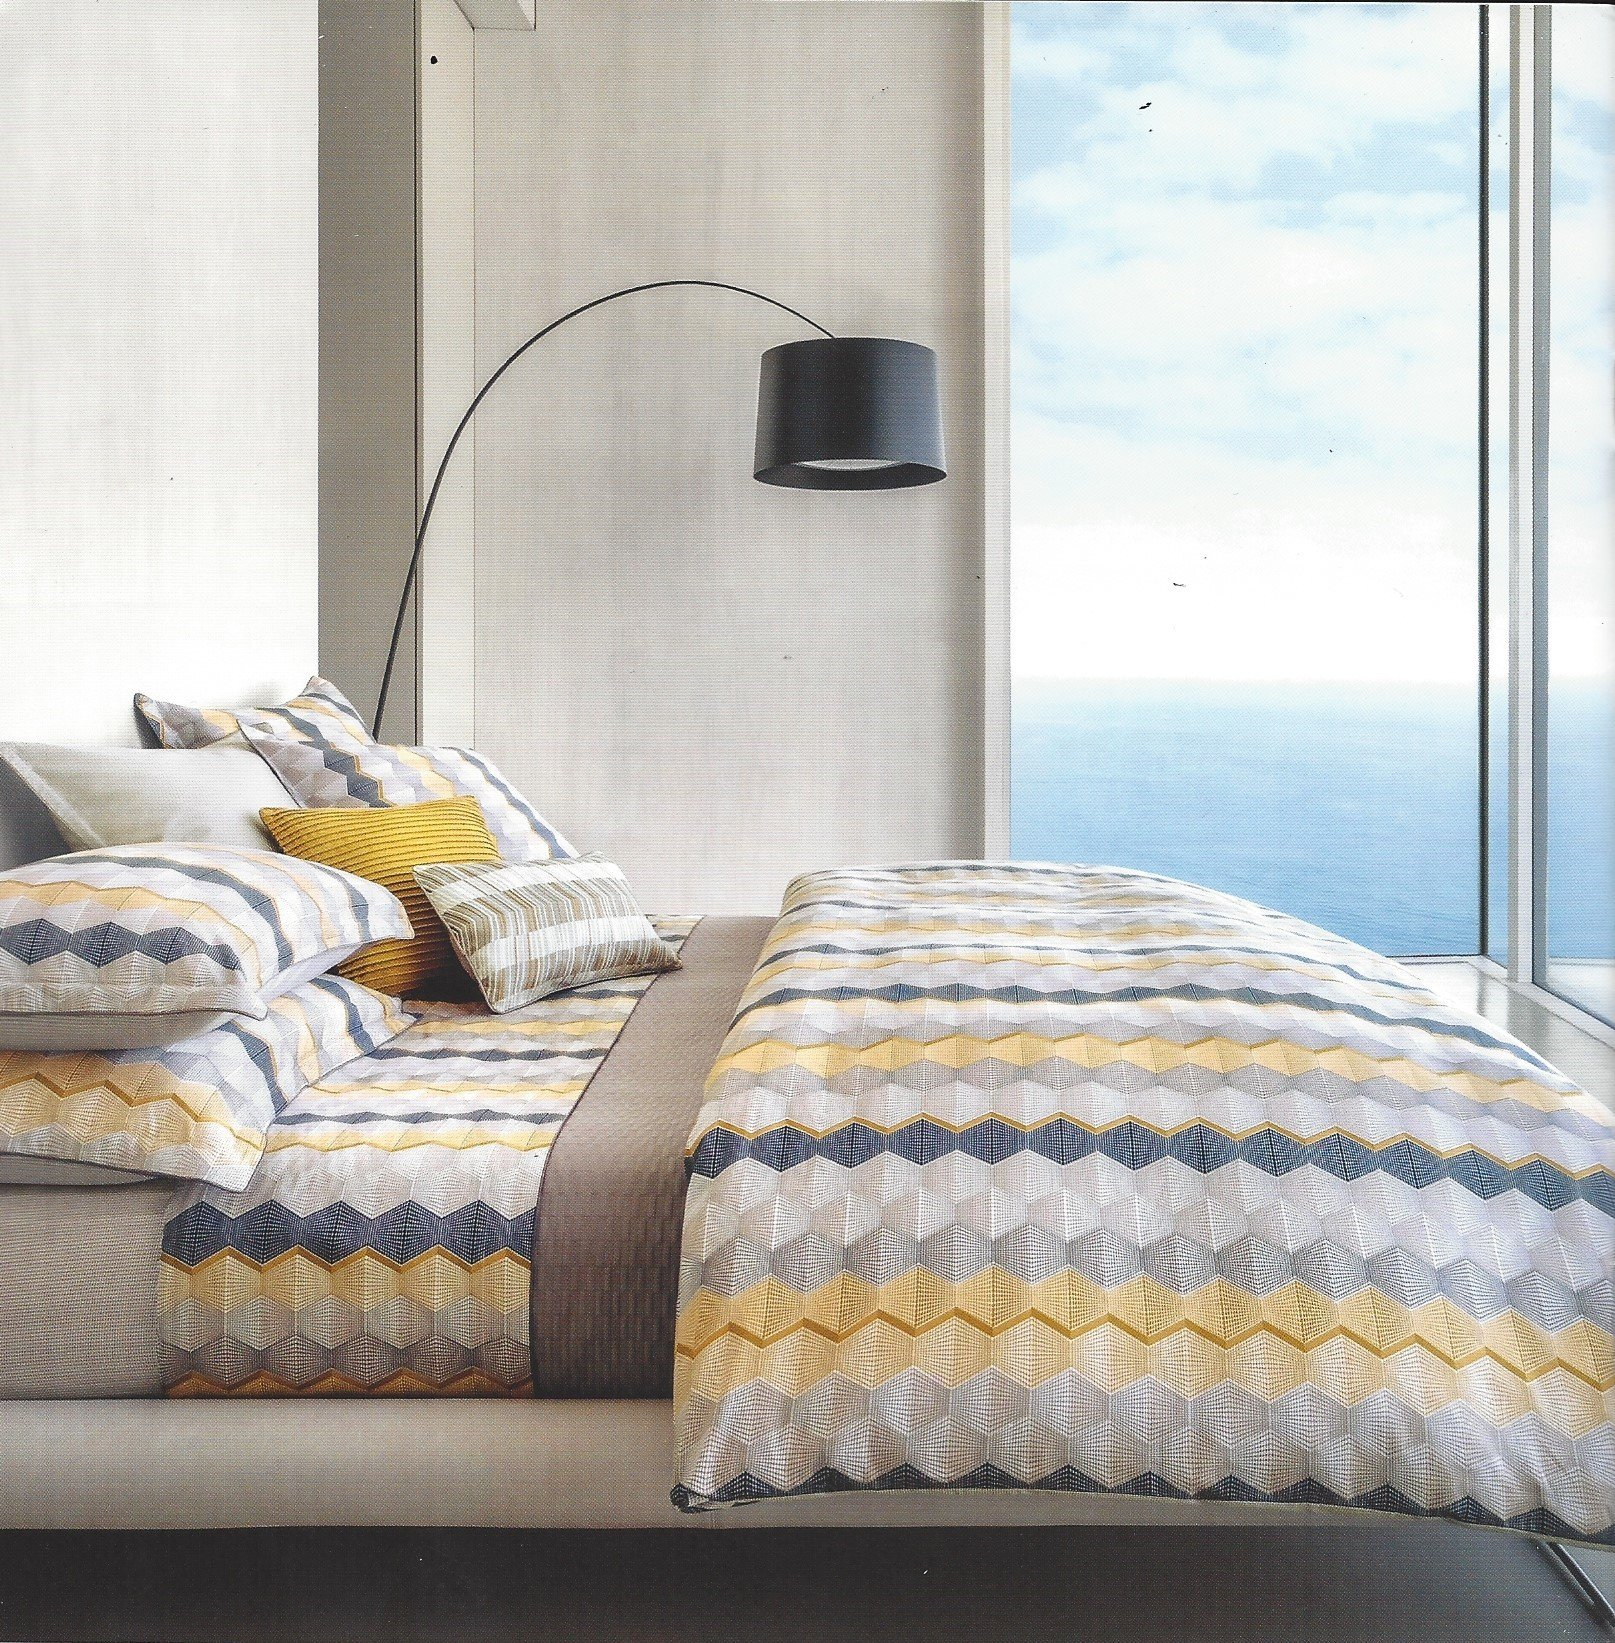 Complete Your Bedroom With The Fun Print From Hugo Boss Made Of